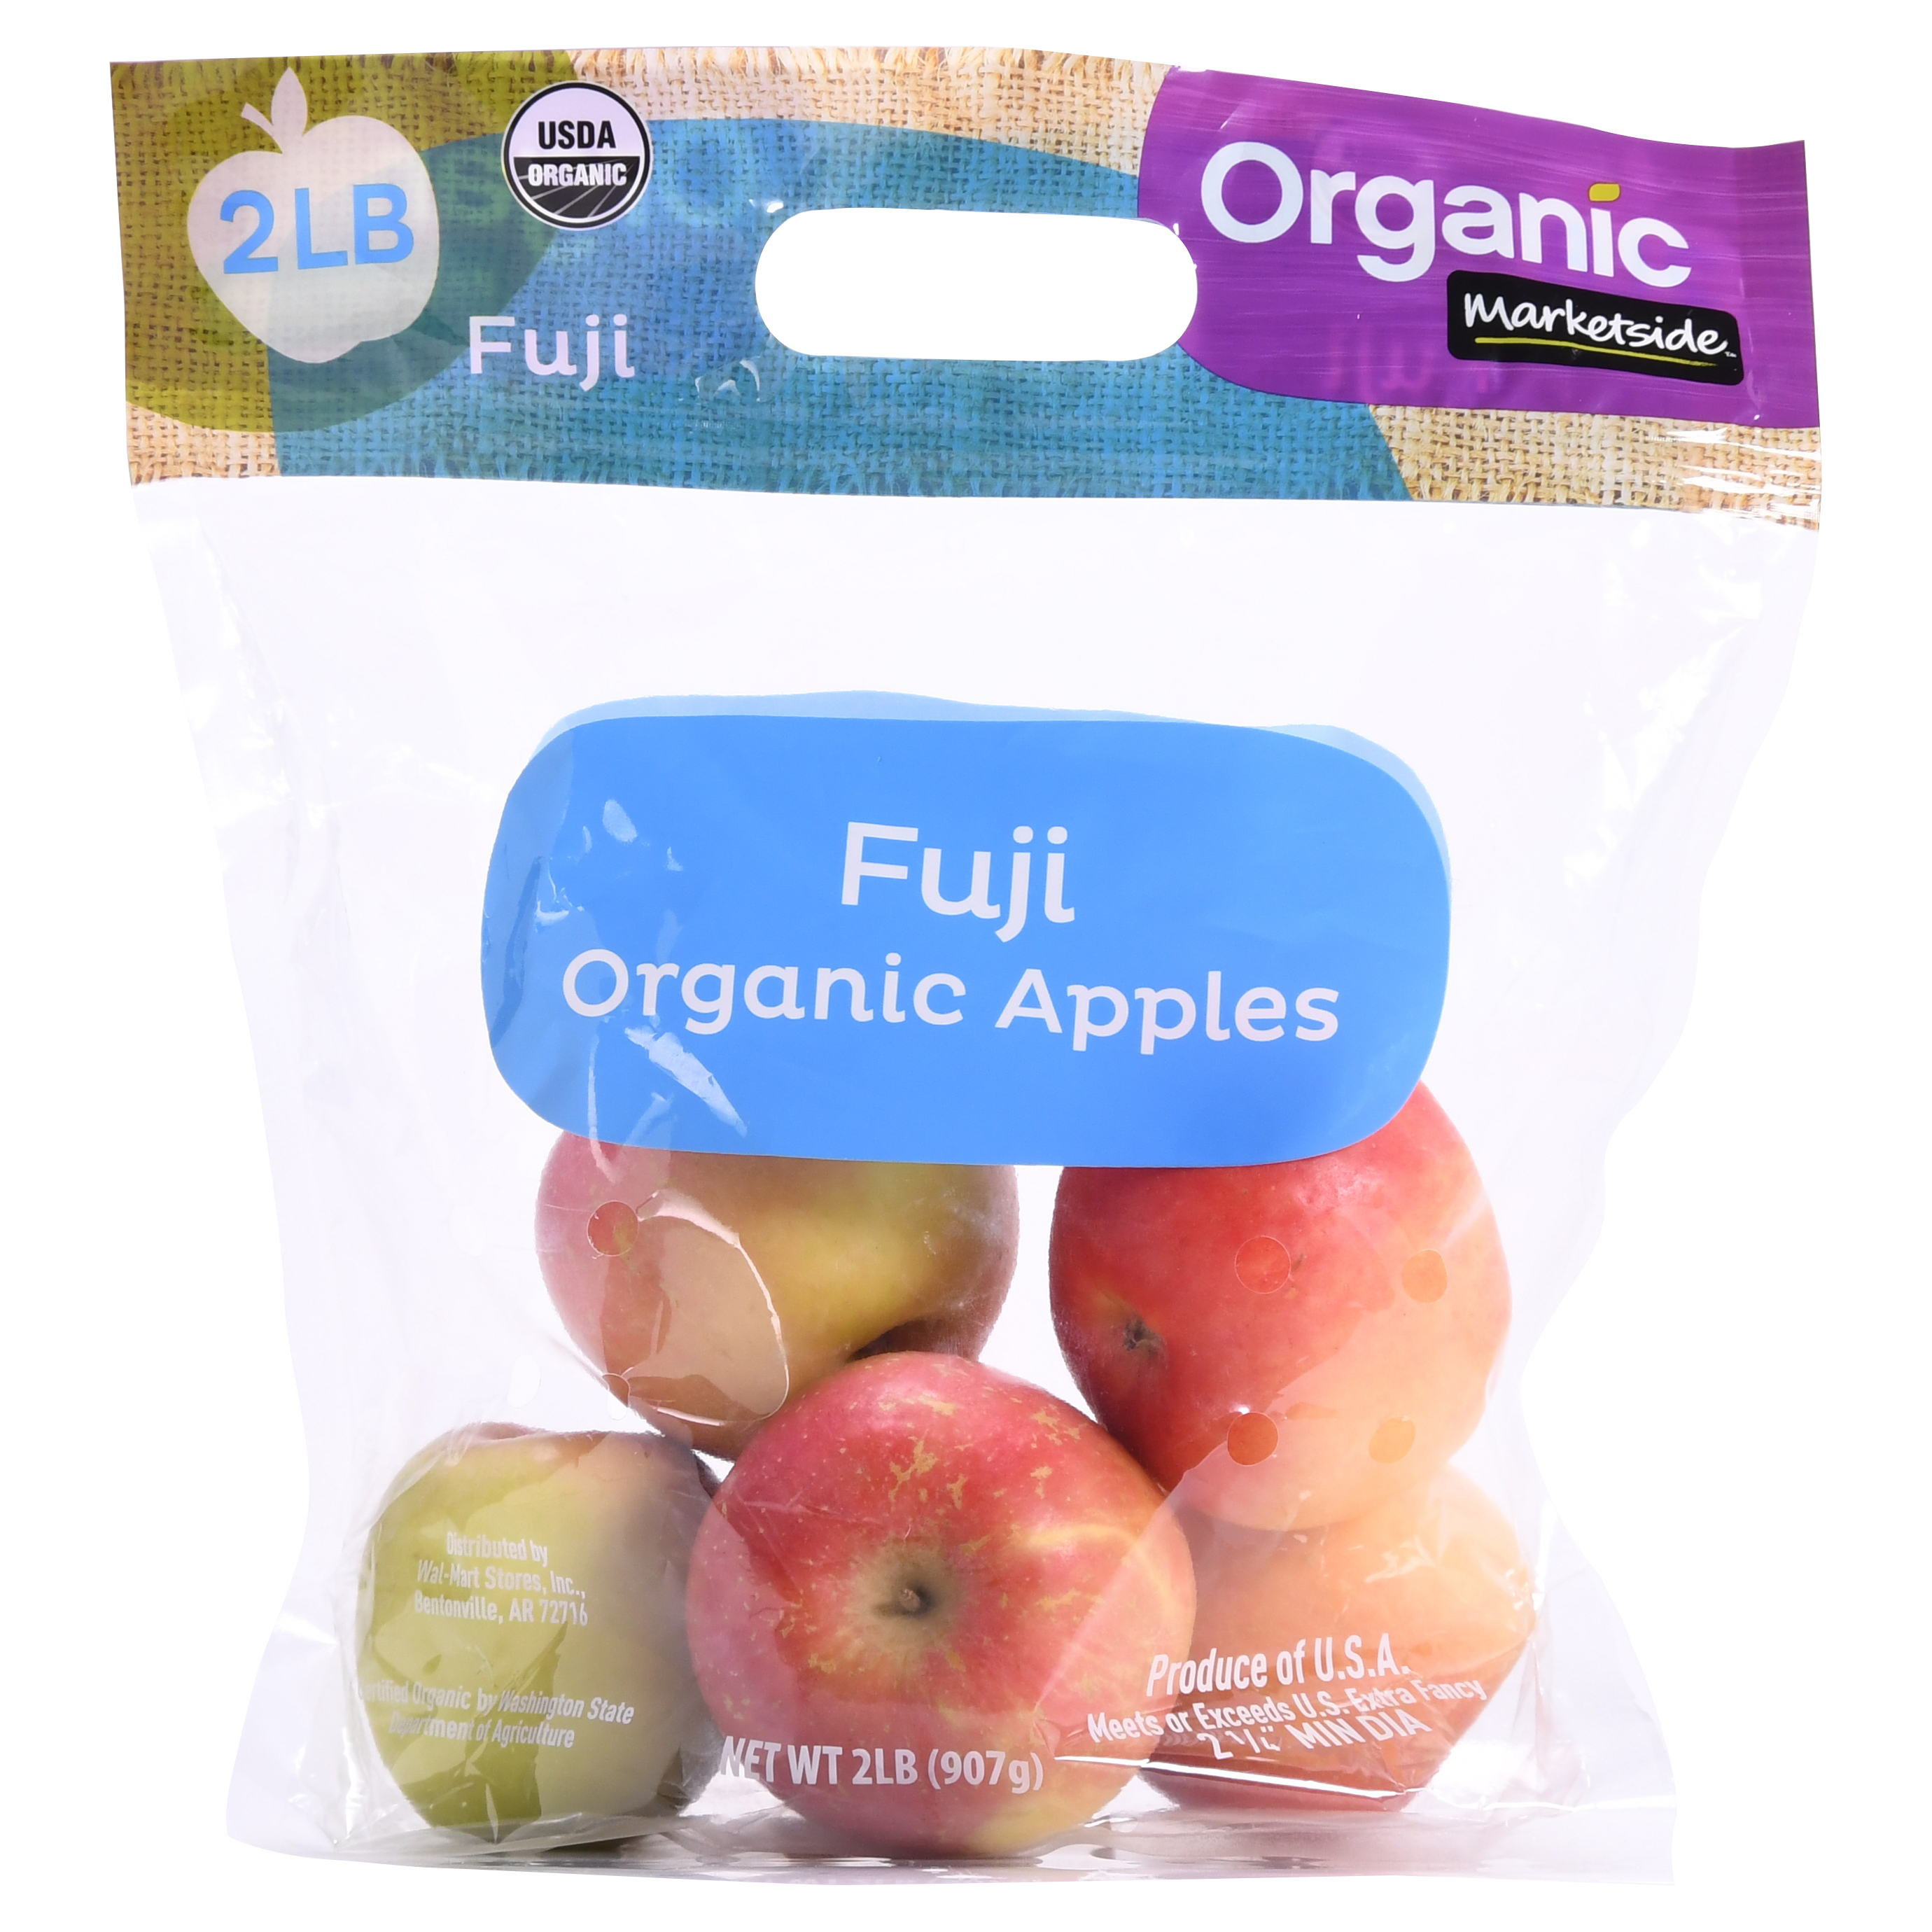 Marketside Organic Fuji Apples, 2 lb